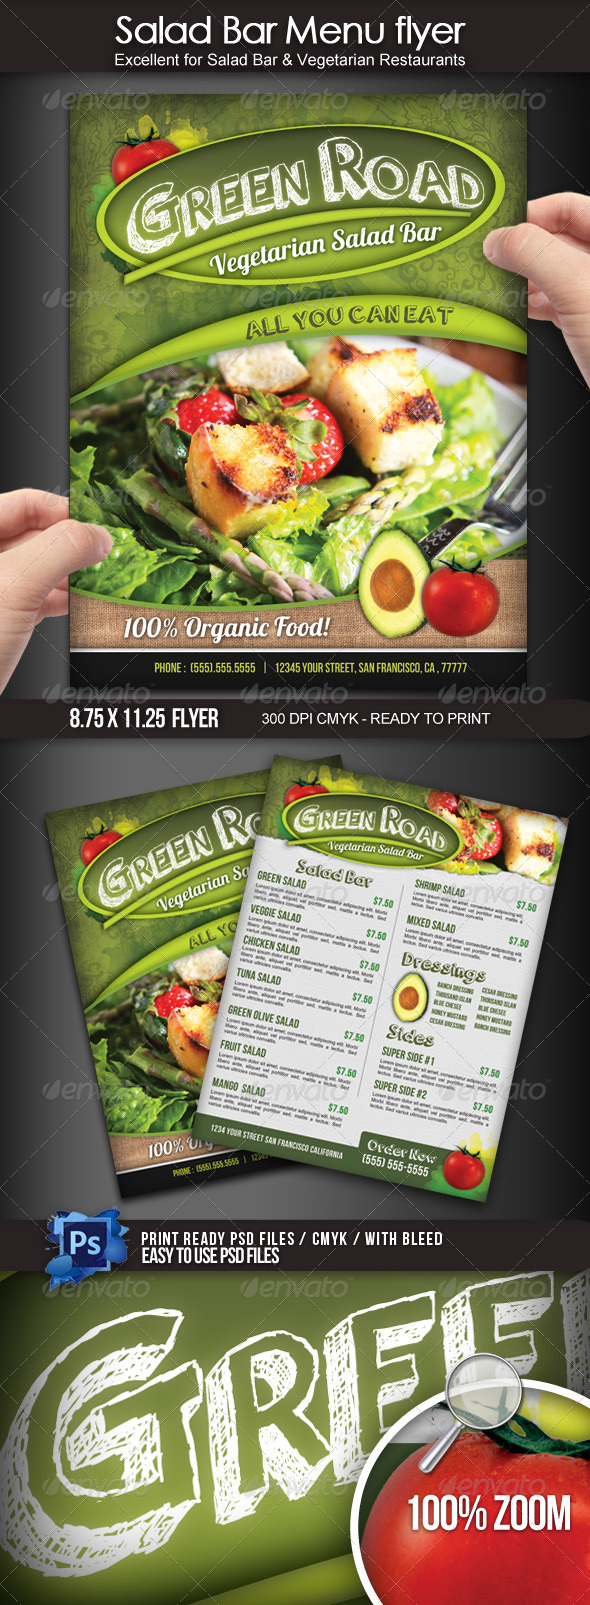 Salad Bar Menu Flyer - Restaurant Flyers